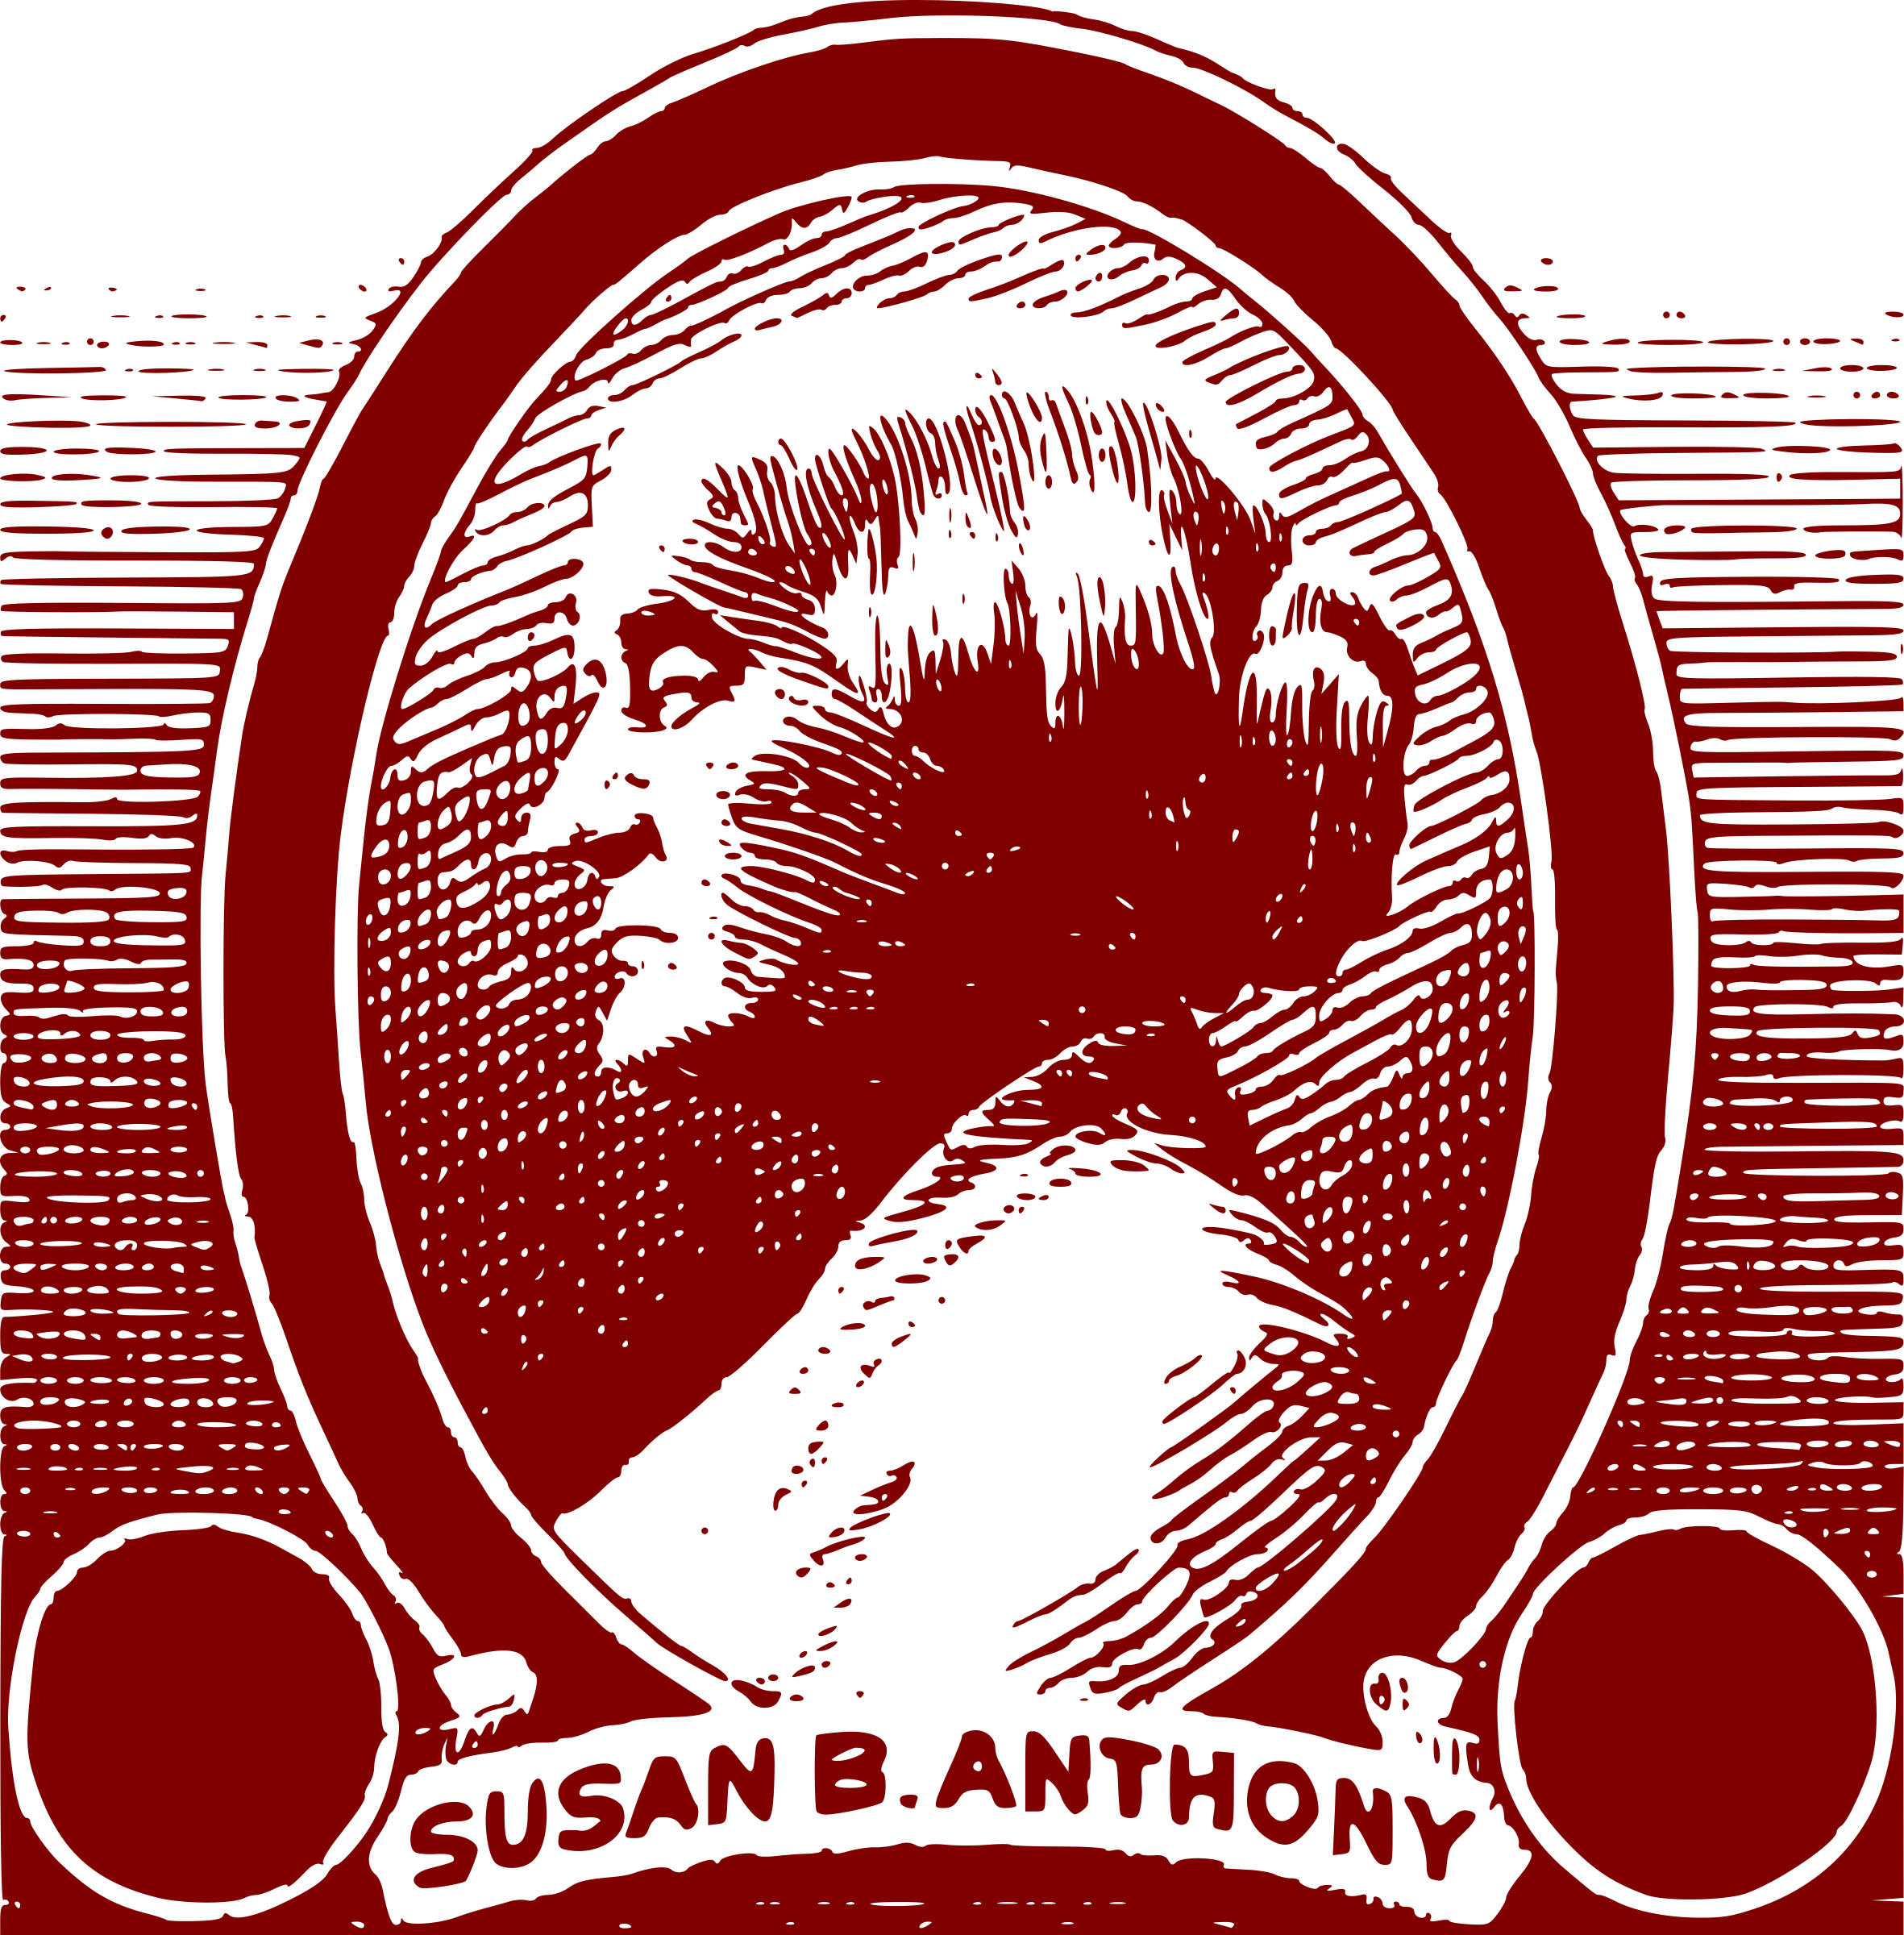 Susan B Anthony by j4p4n